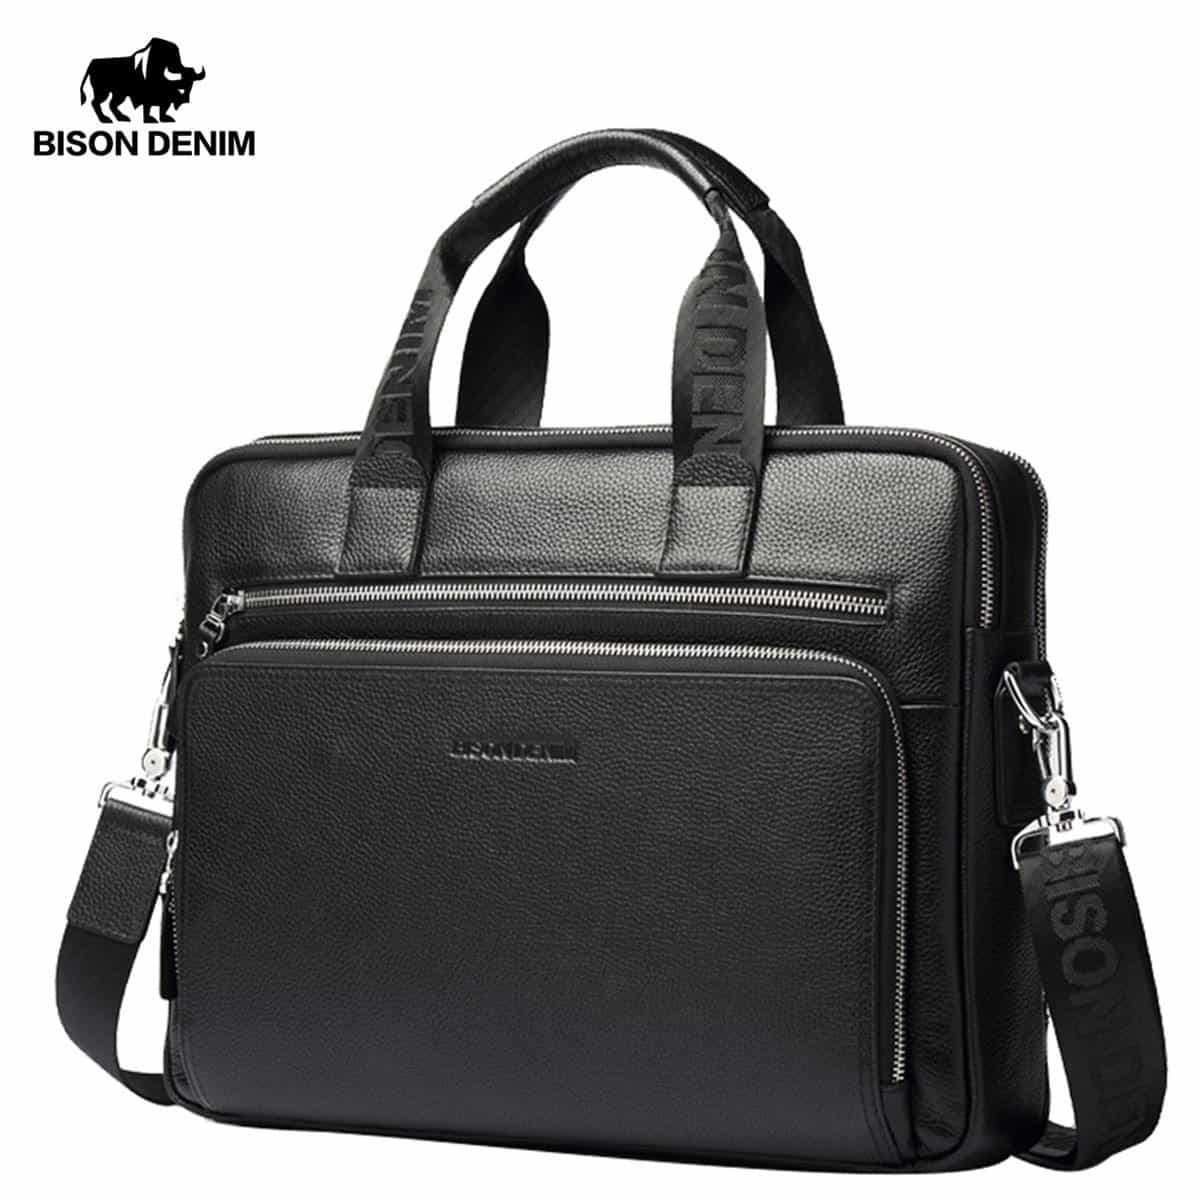 "Genuine leather Briefcases 14"" Laptop Handbag, [variant_title], [option1], [option2], [option3] - anythinganyware"